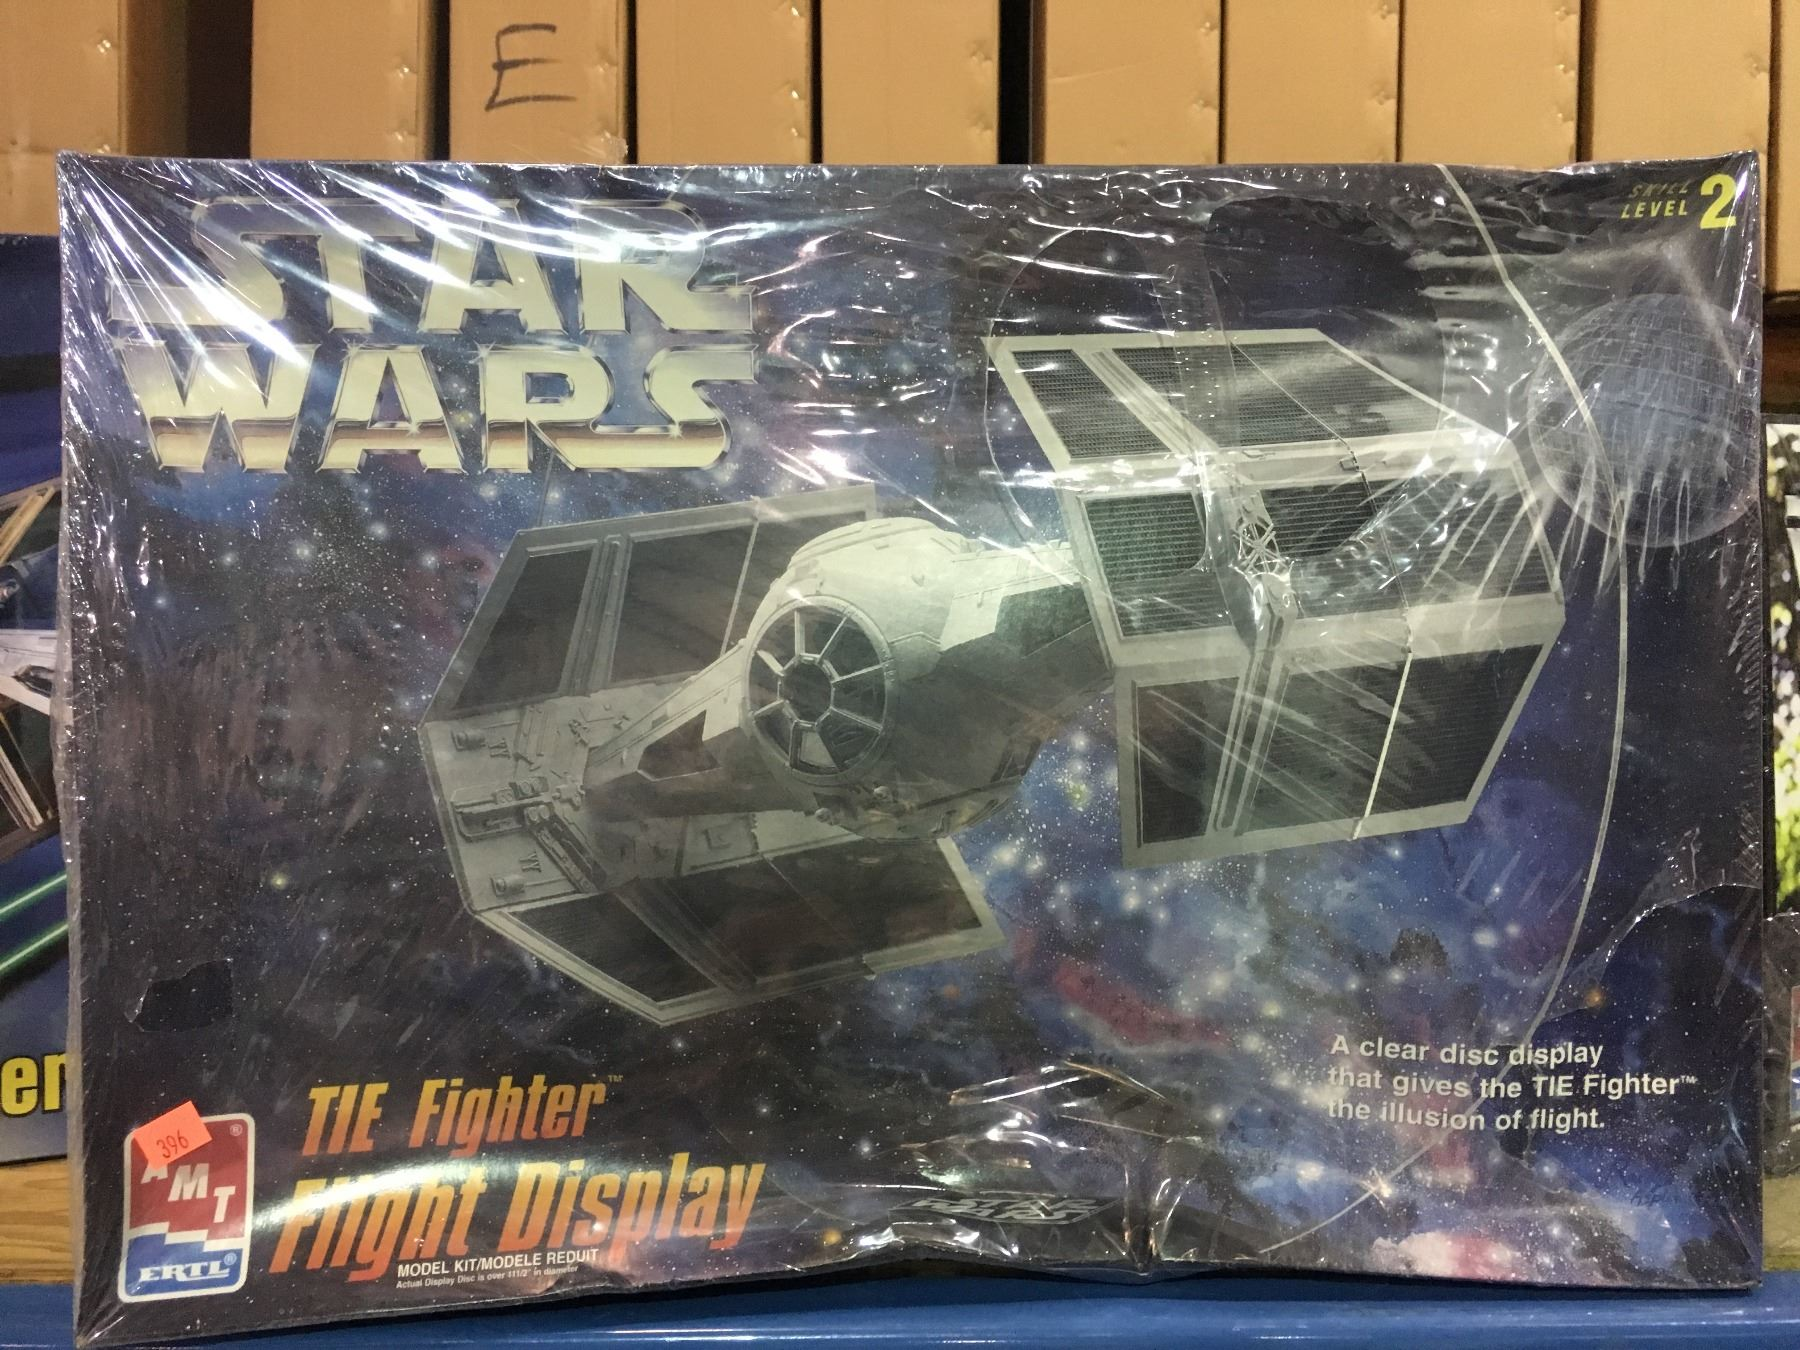 AMT STAR WARS TIE FIGHTER FLIGHT DISPLAY MODEL KIT